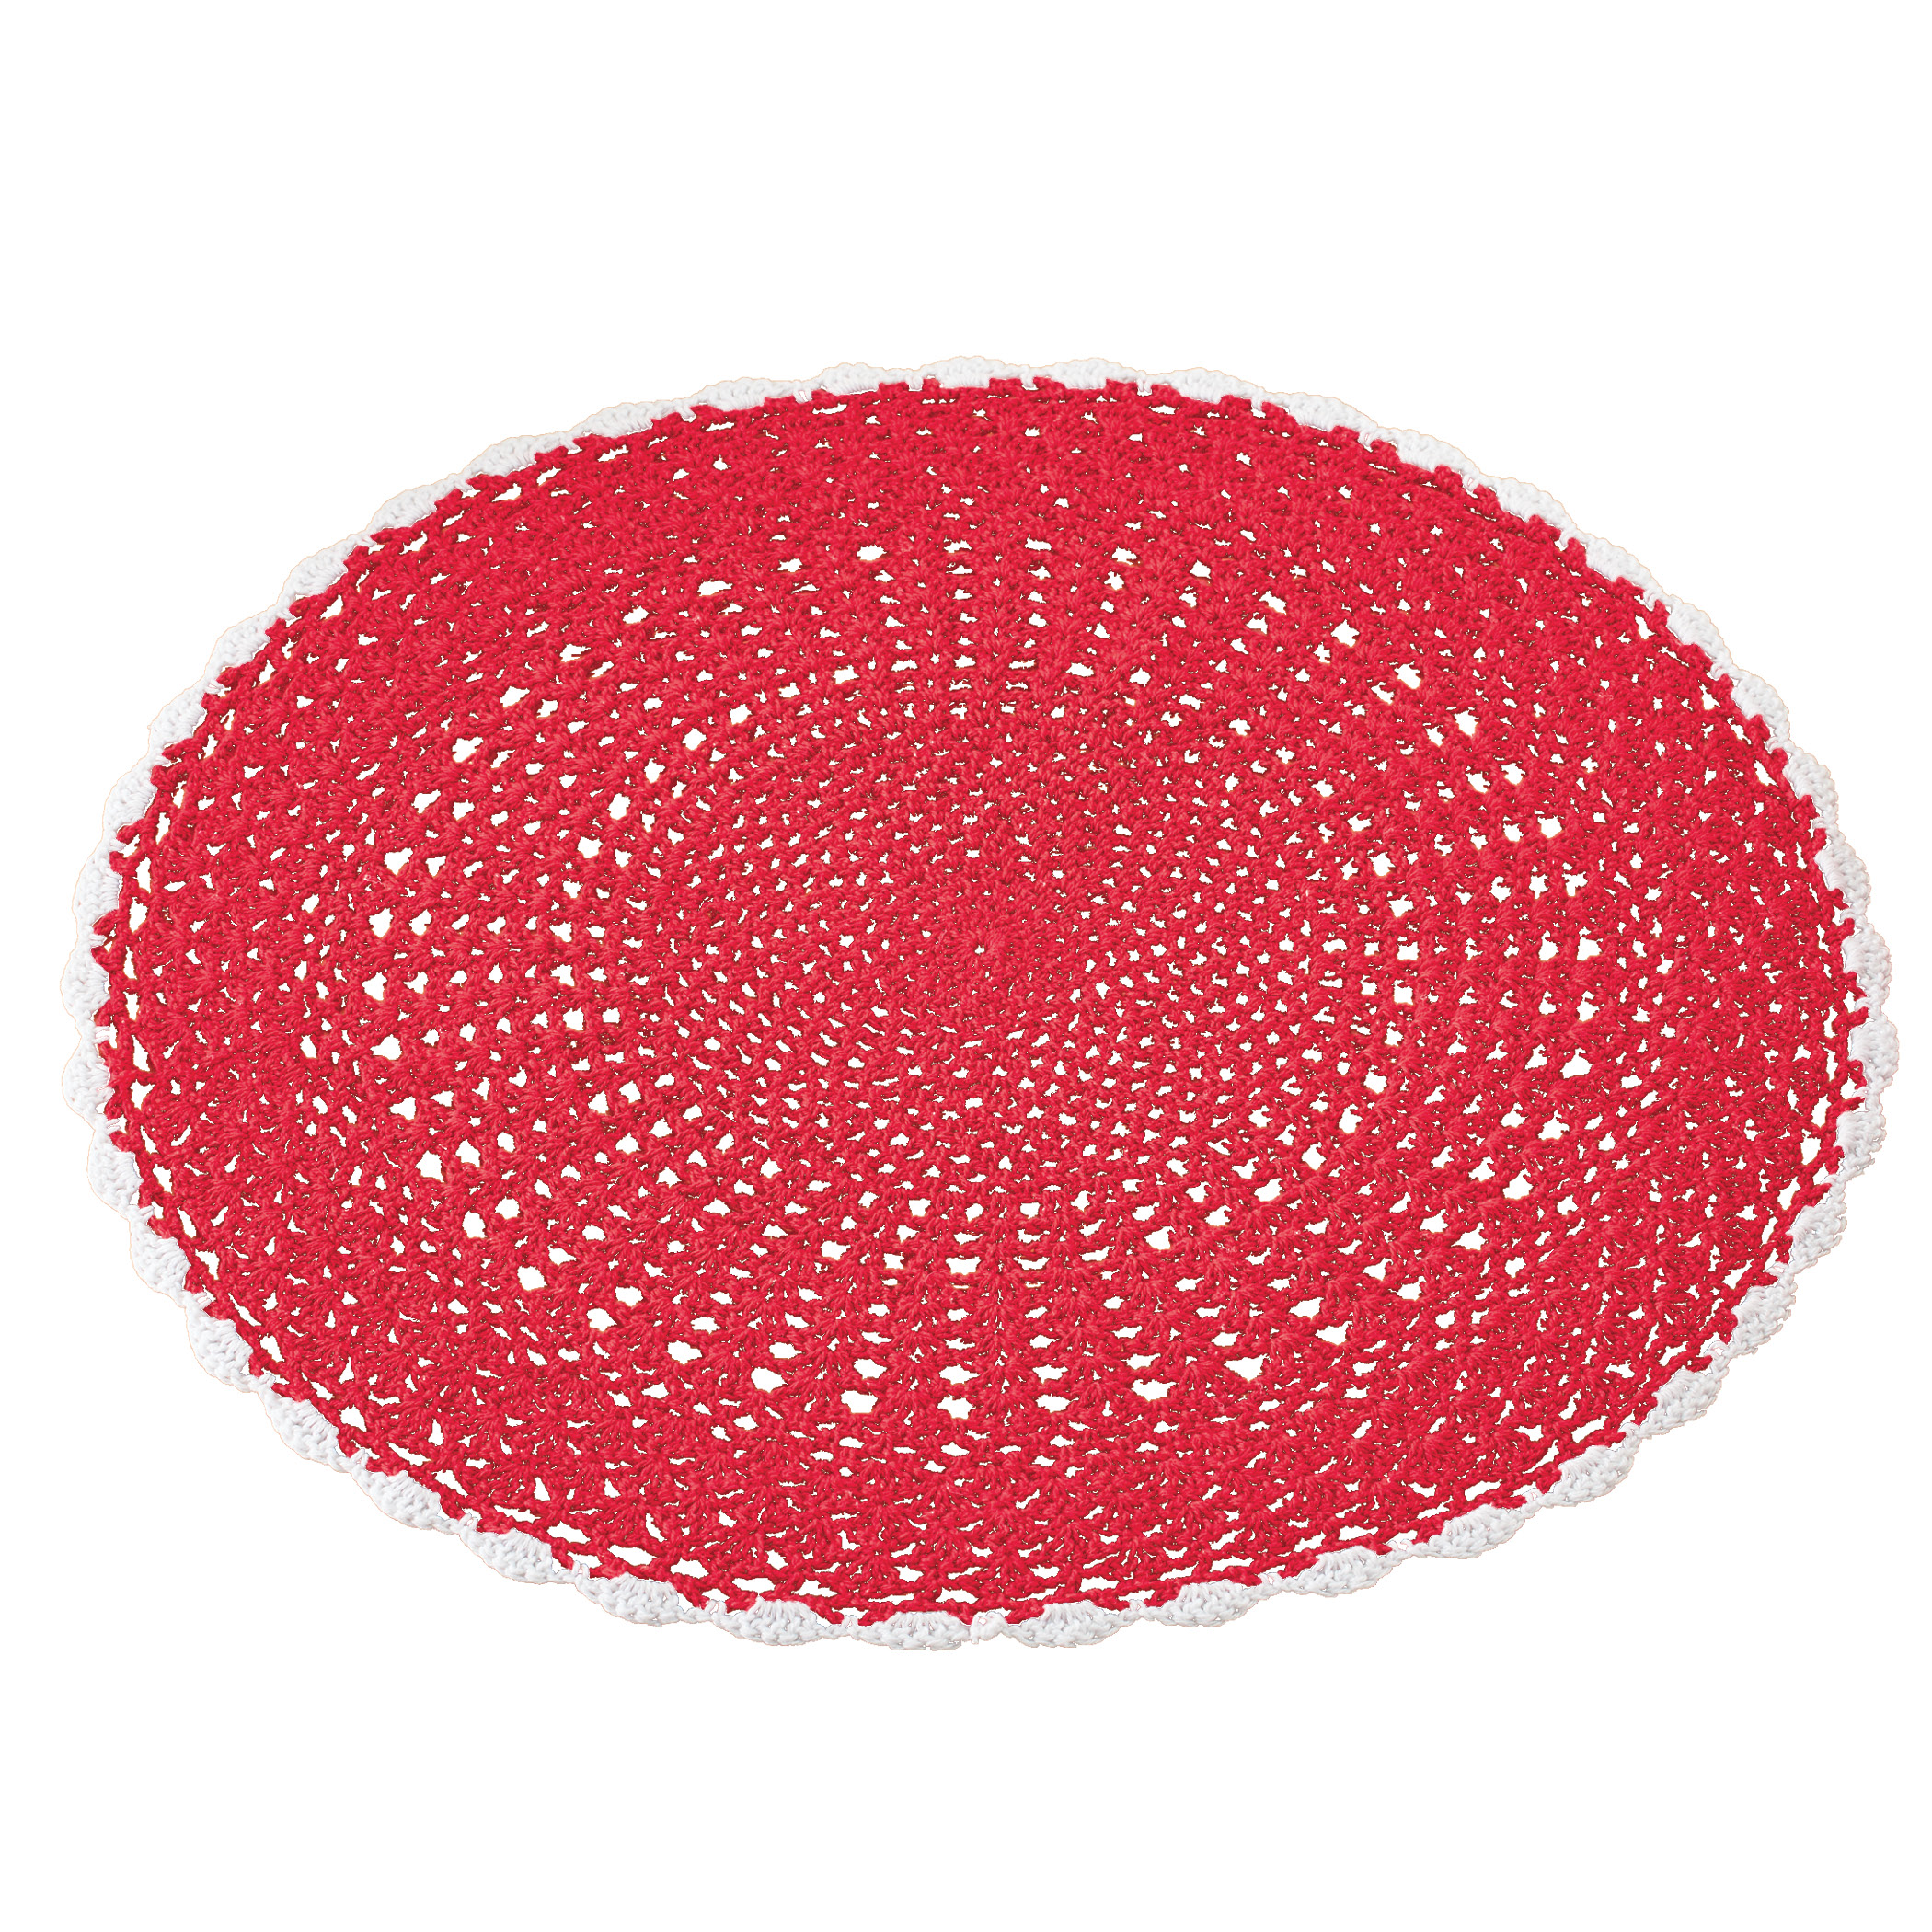 Set of 4 crochet placemats to match your decor